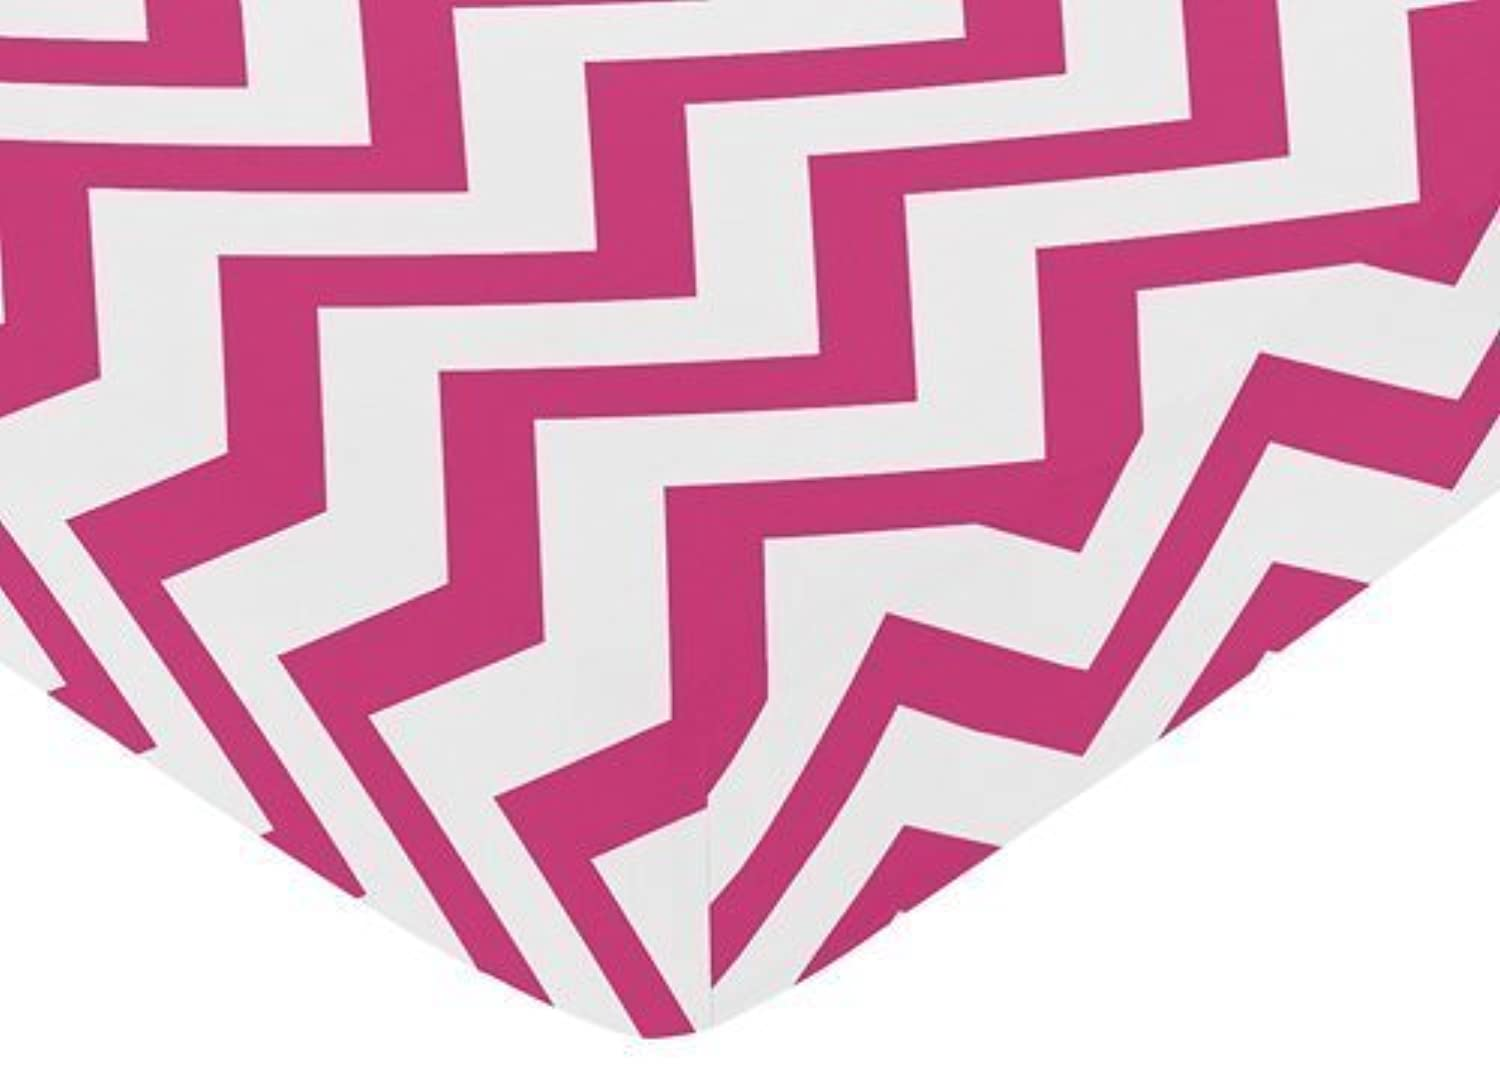 Sweet Jojo Designs Fitted Crib Sheet for Hot Pink and White Chevron Collection Baby/Toddler Bedding - Zig Zag Print [並行輸入品]